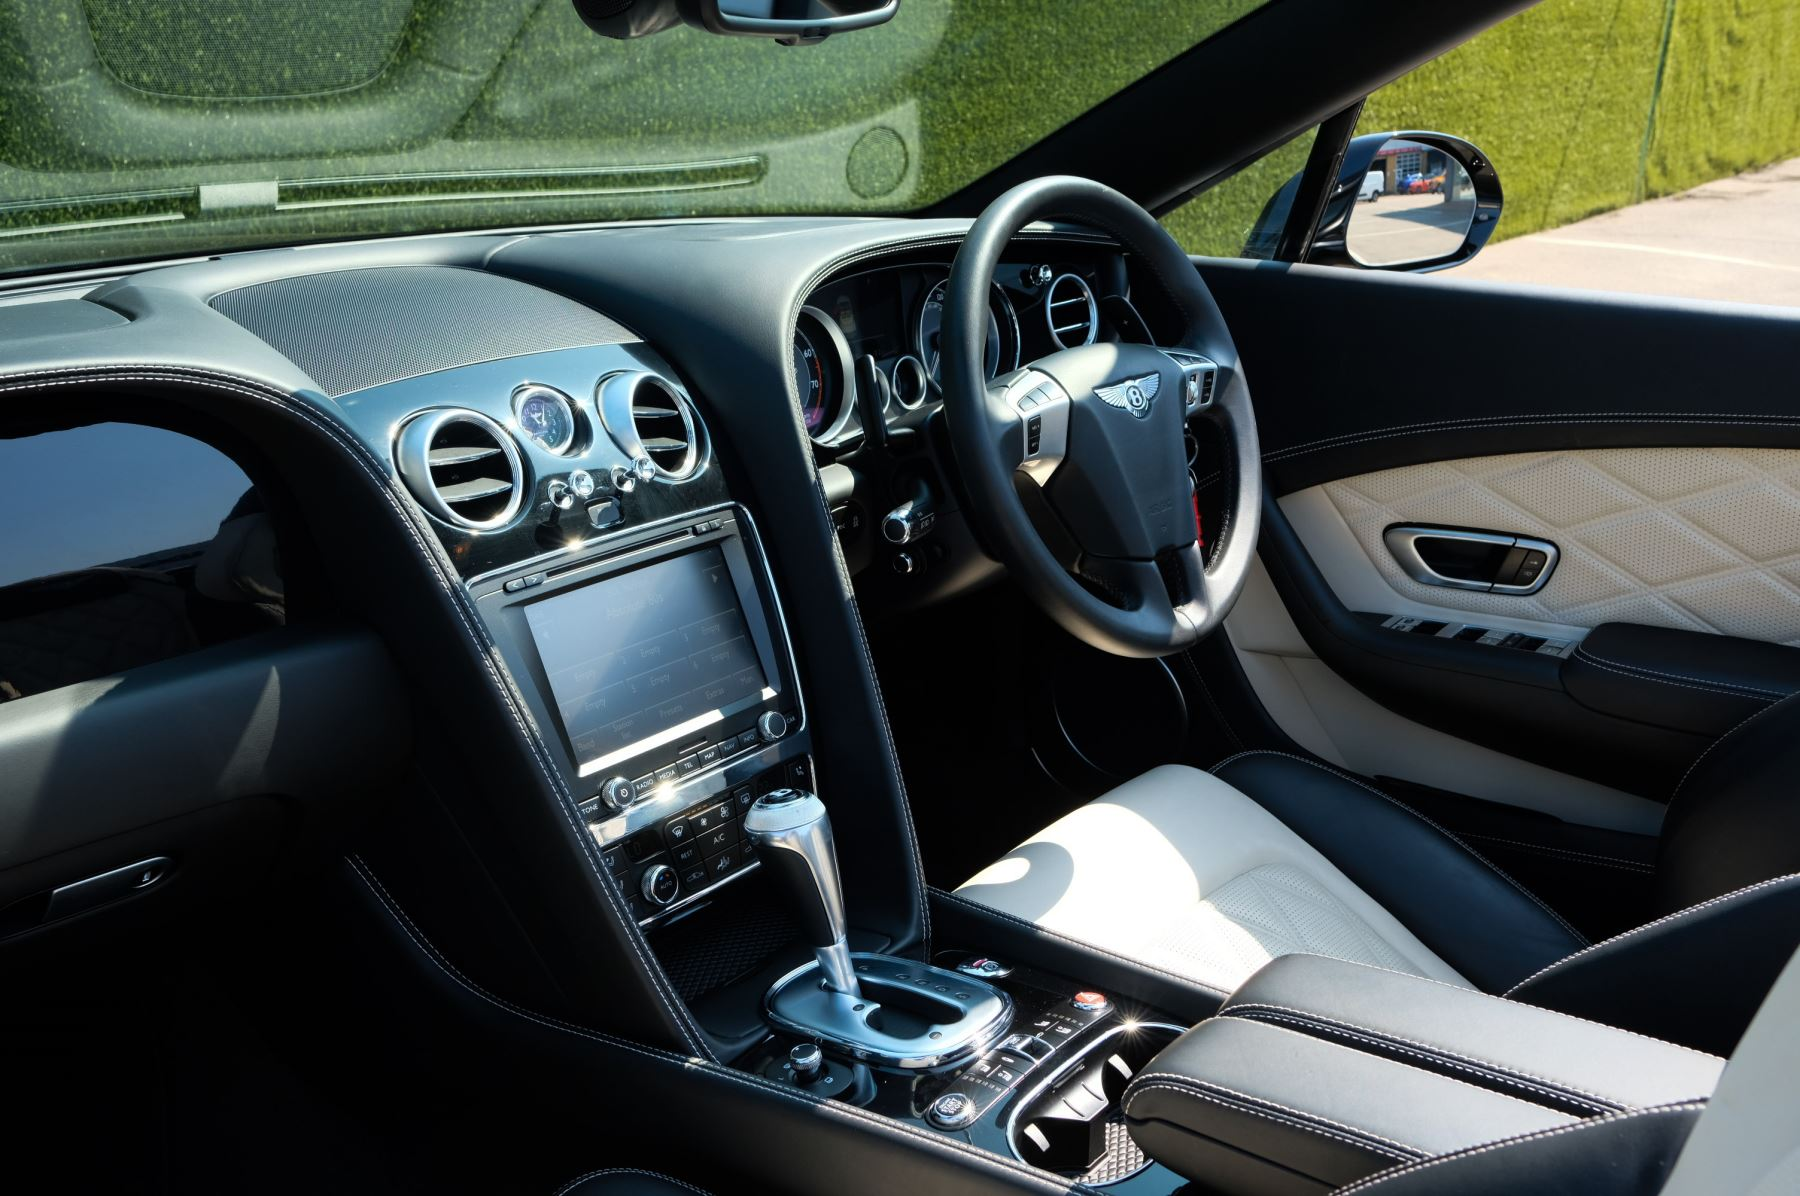 Bentley Continental GTC 4.0 V8 S - Mulliner Driving Specification image 10